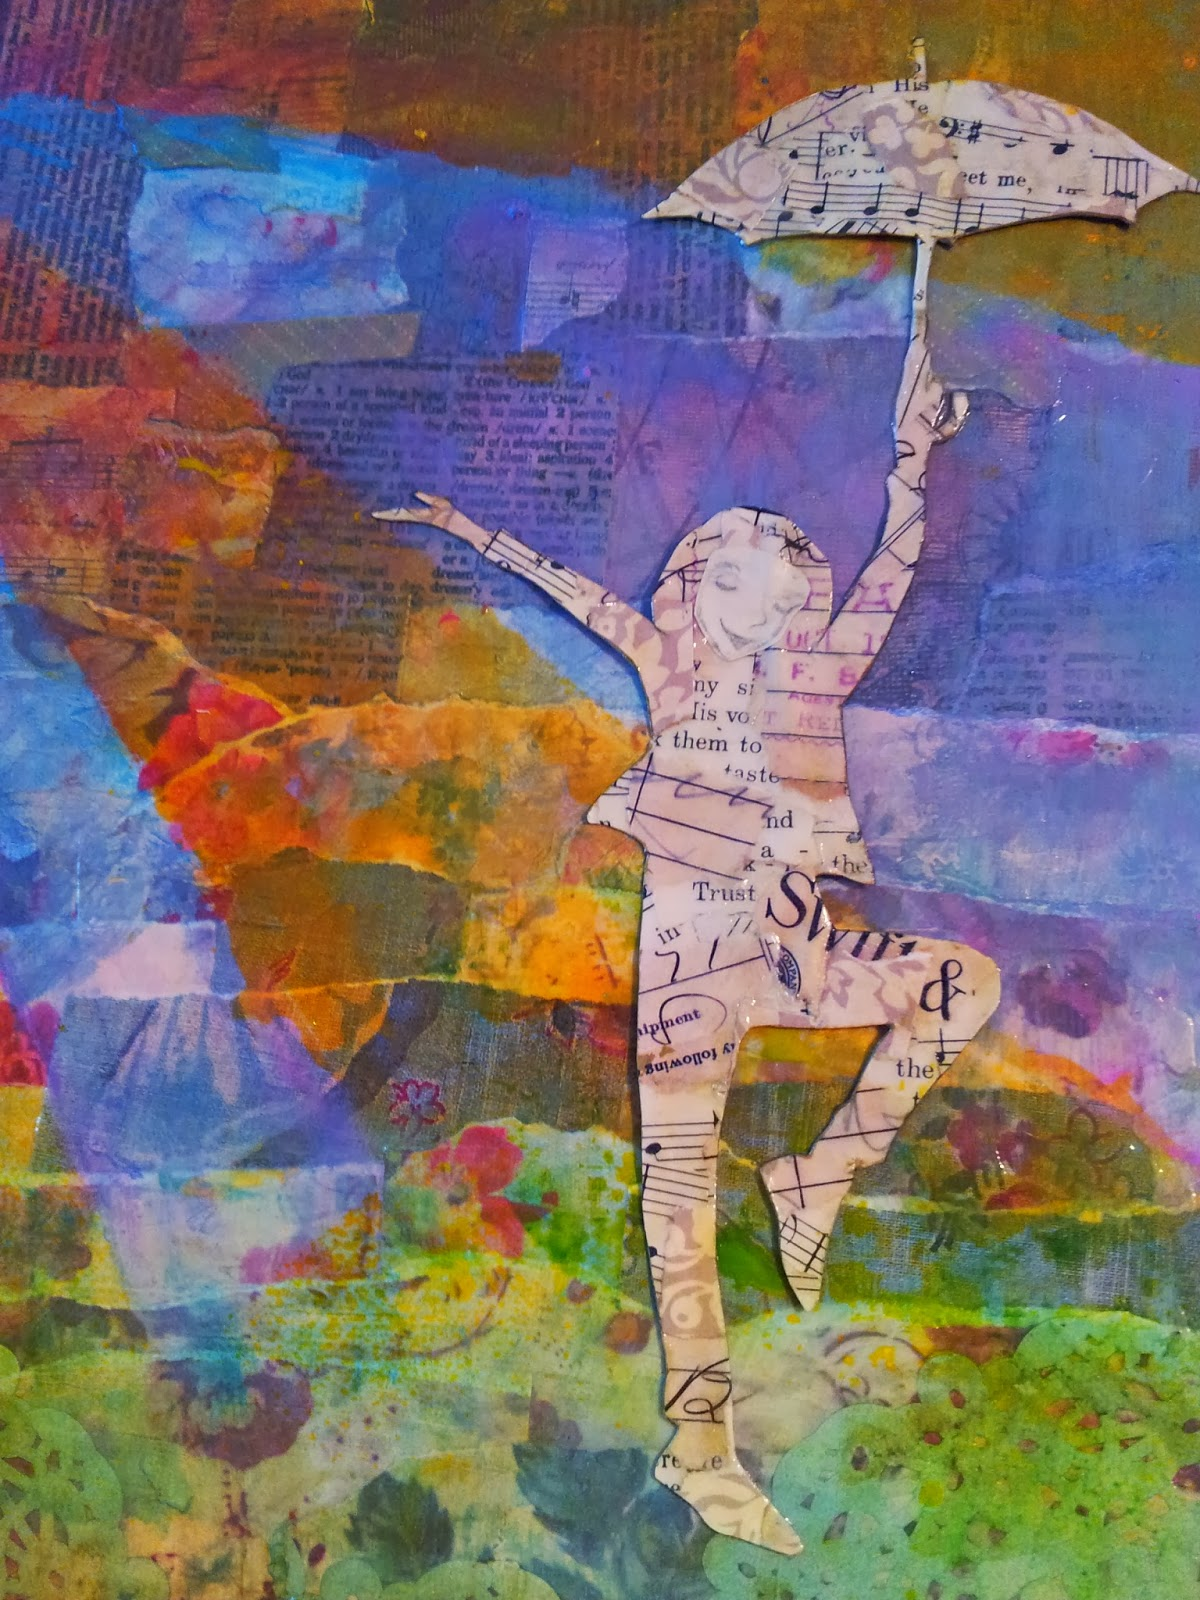 Dapoppins, Dance in the Rain, Praise Him in the Storm, Collage, Mixed Meda